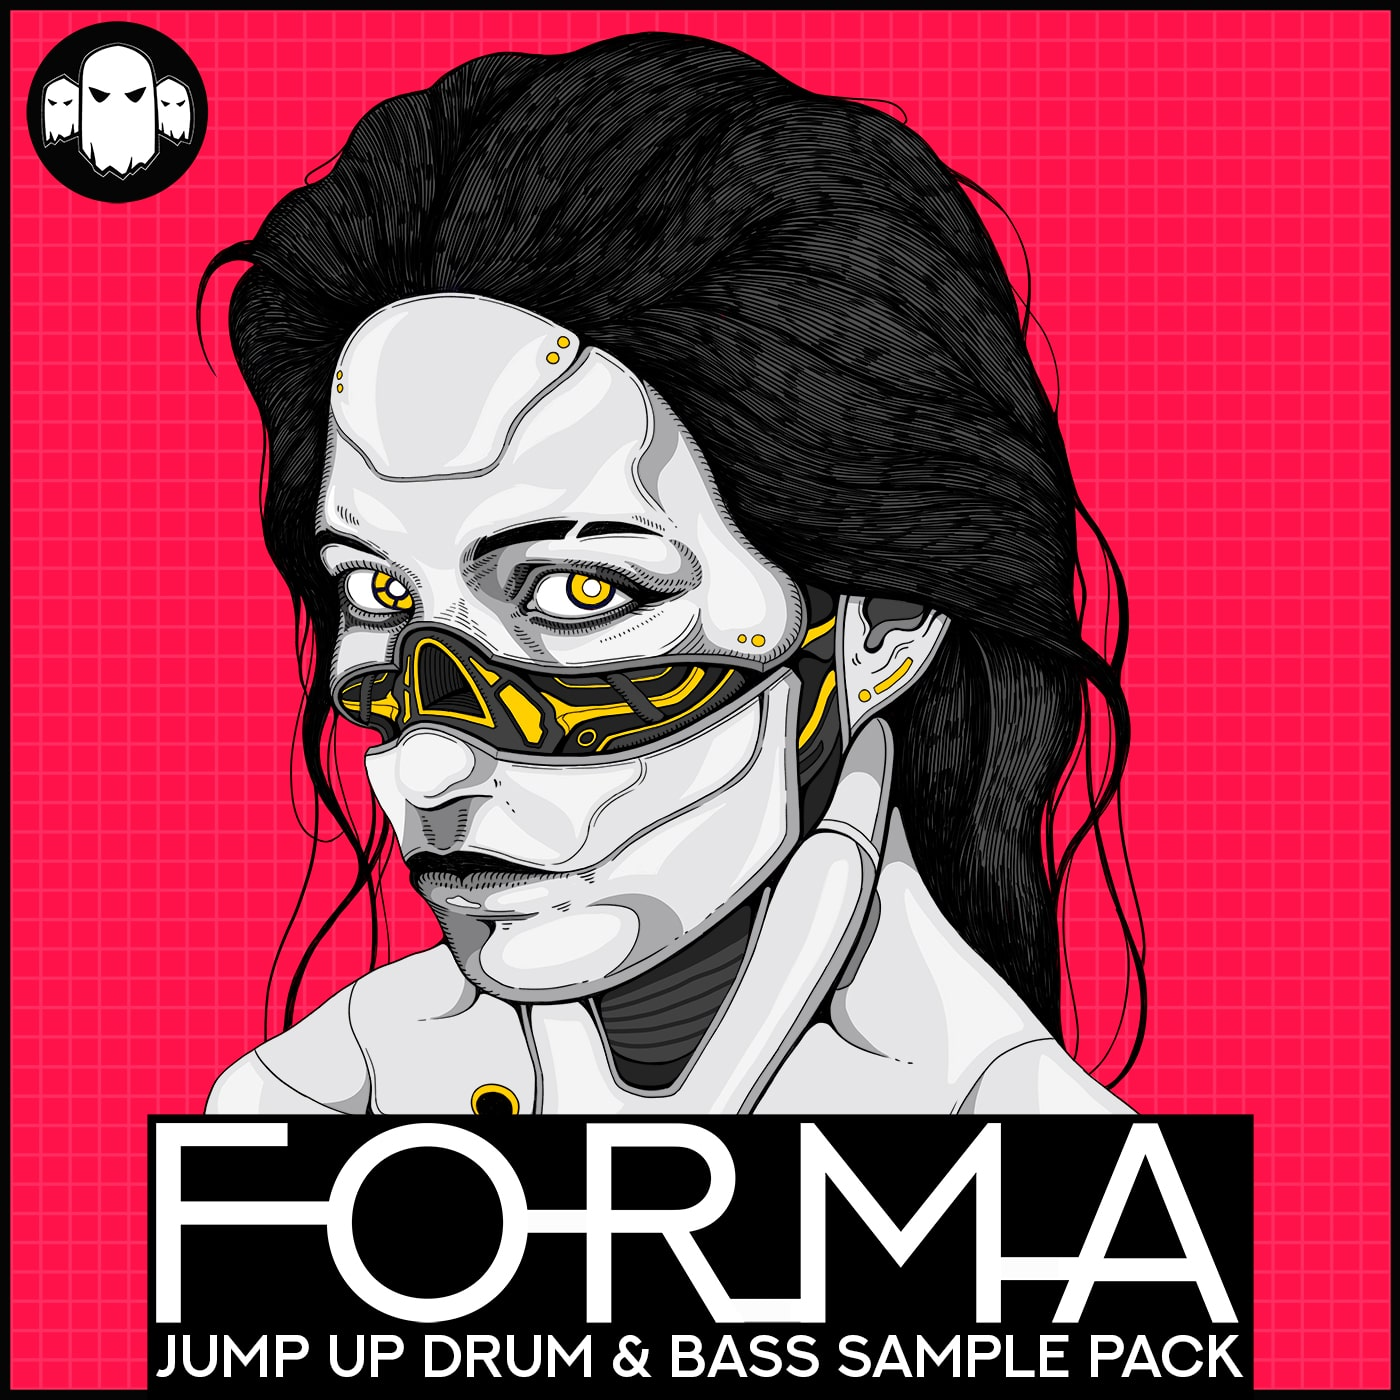 Forma Drum & Bass Sample Pack